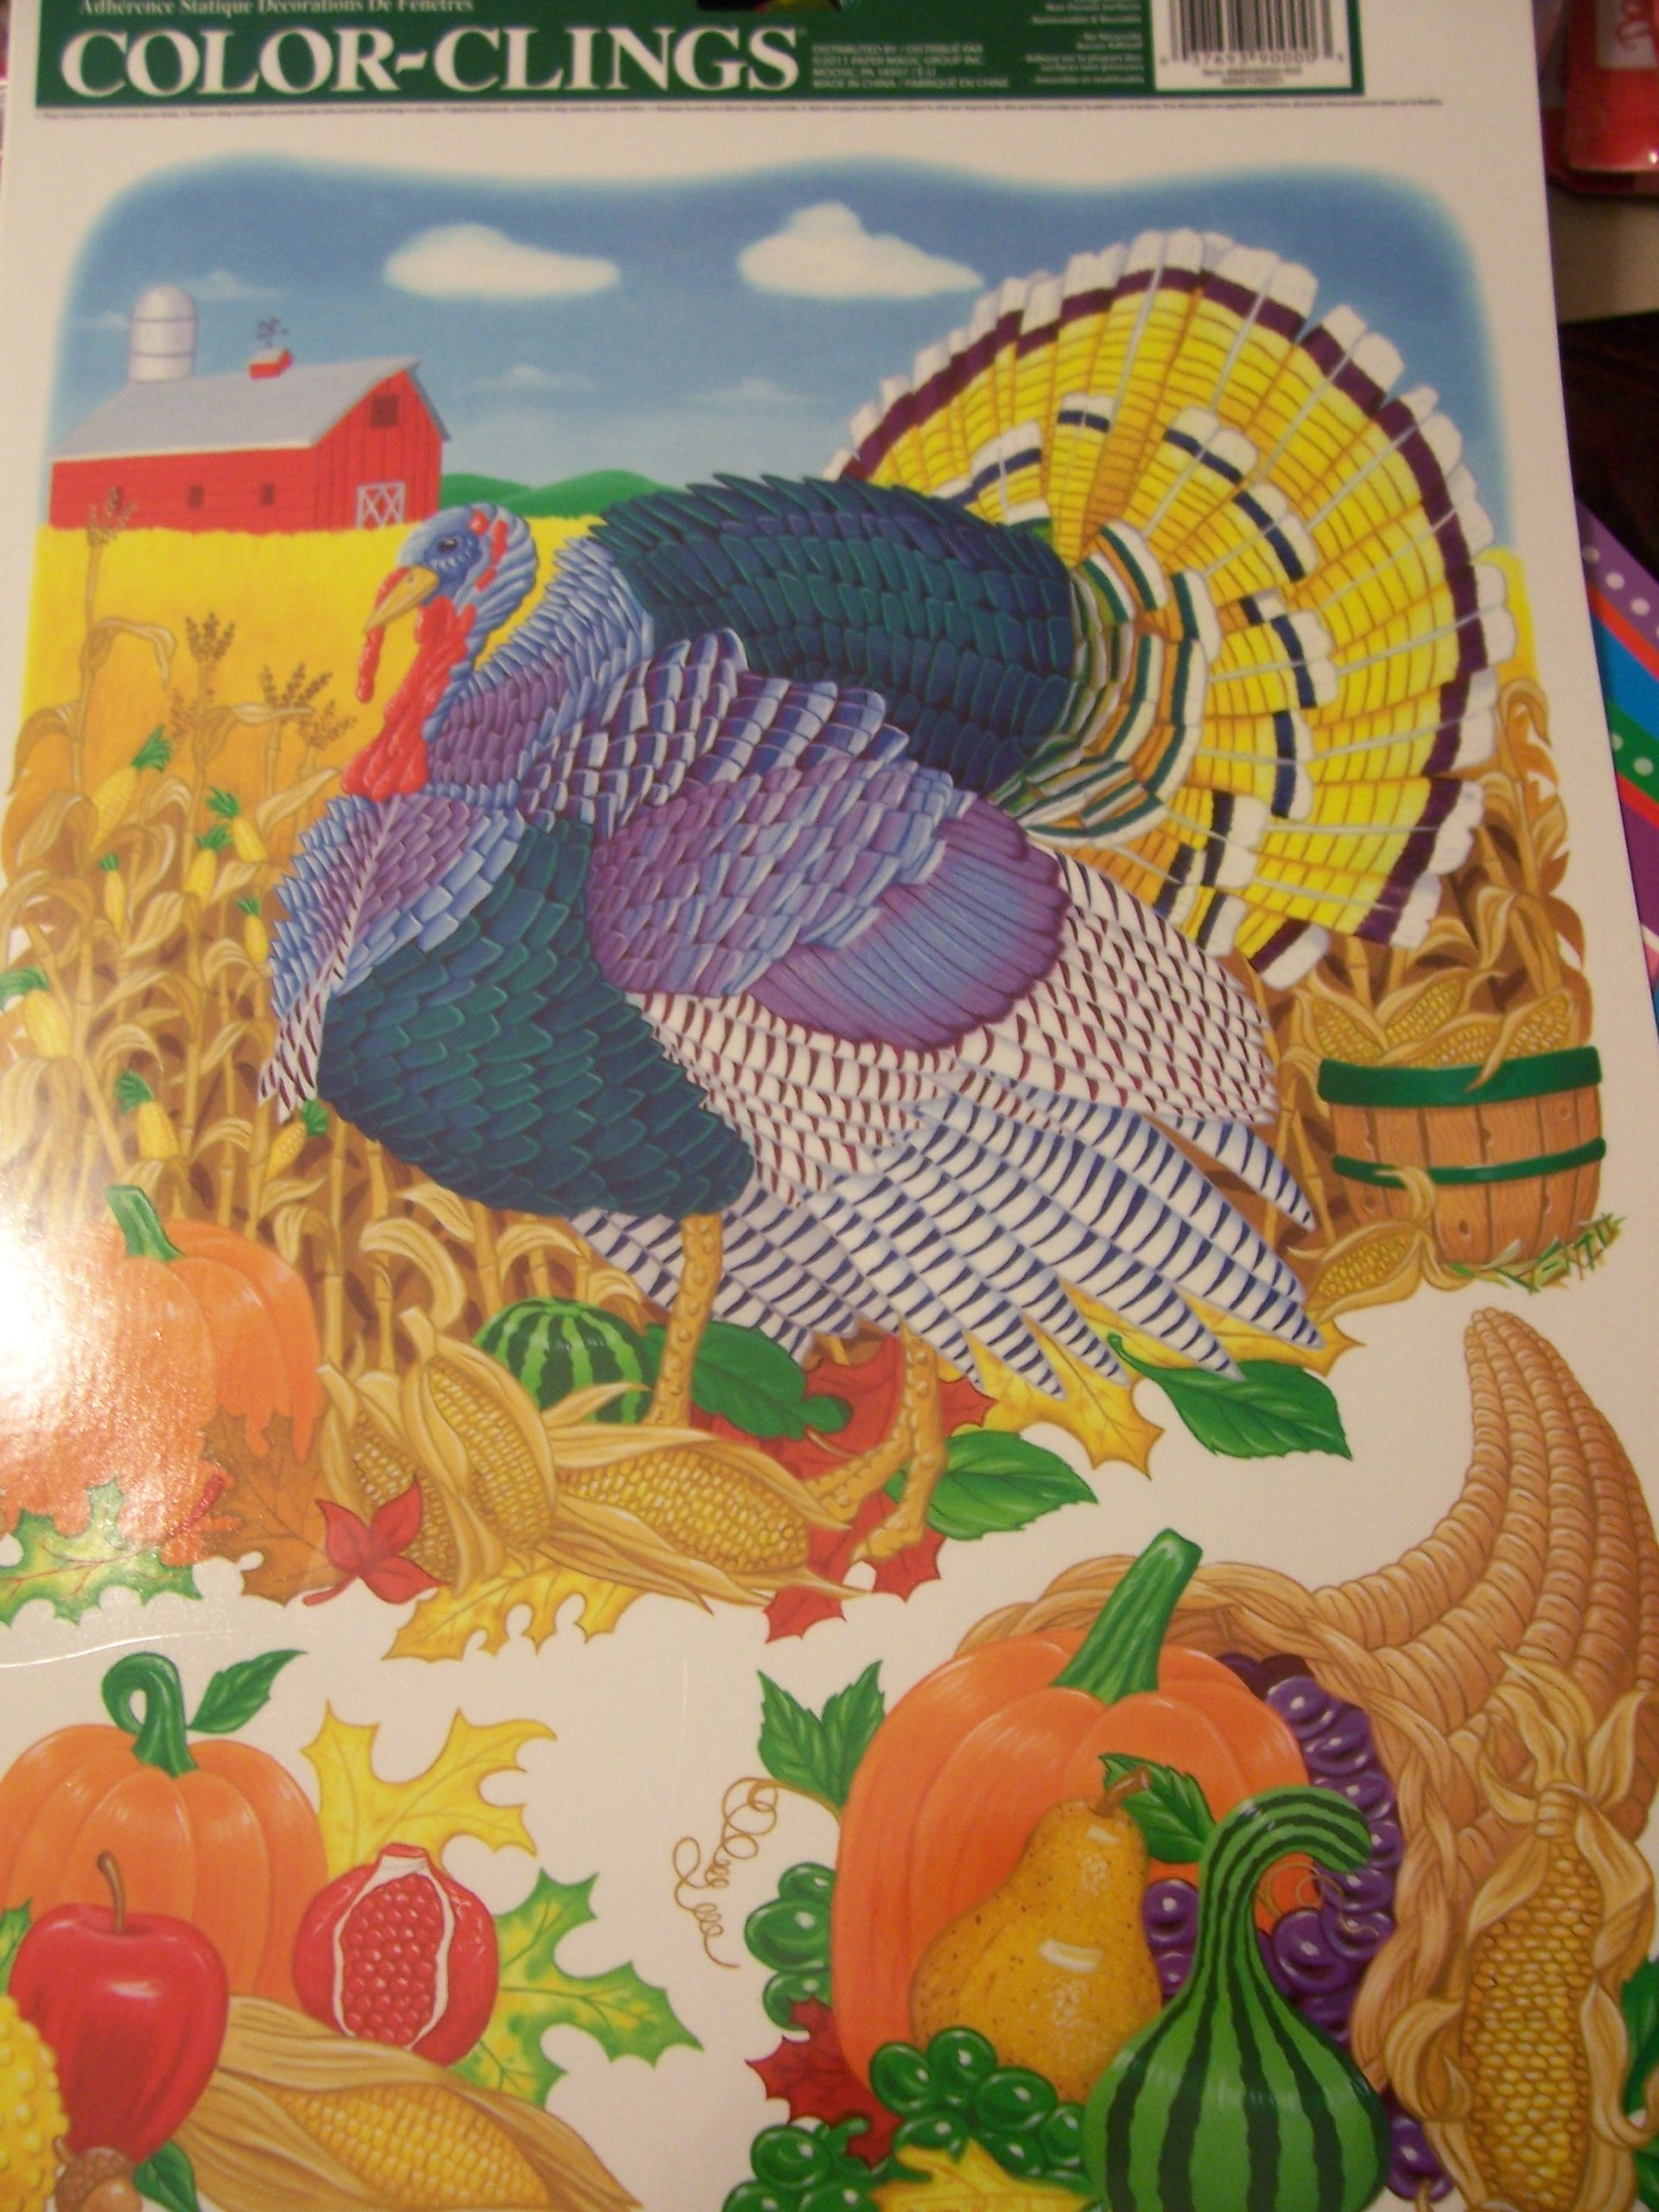 Fall Harvest Reusable Color Clings Window Clings ~ Country Harvest Turkey (3 Clings)